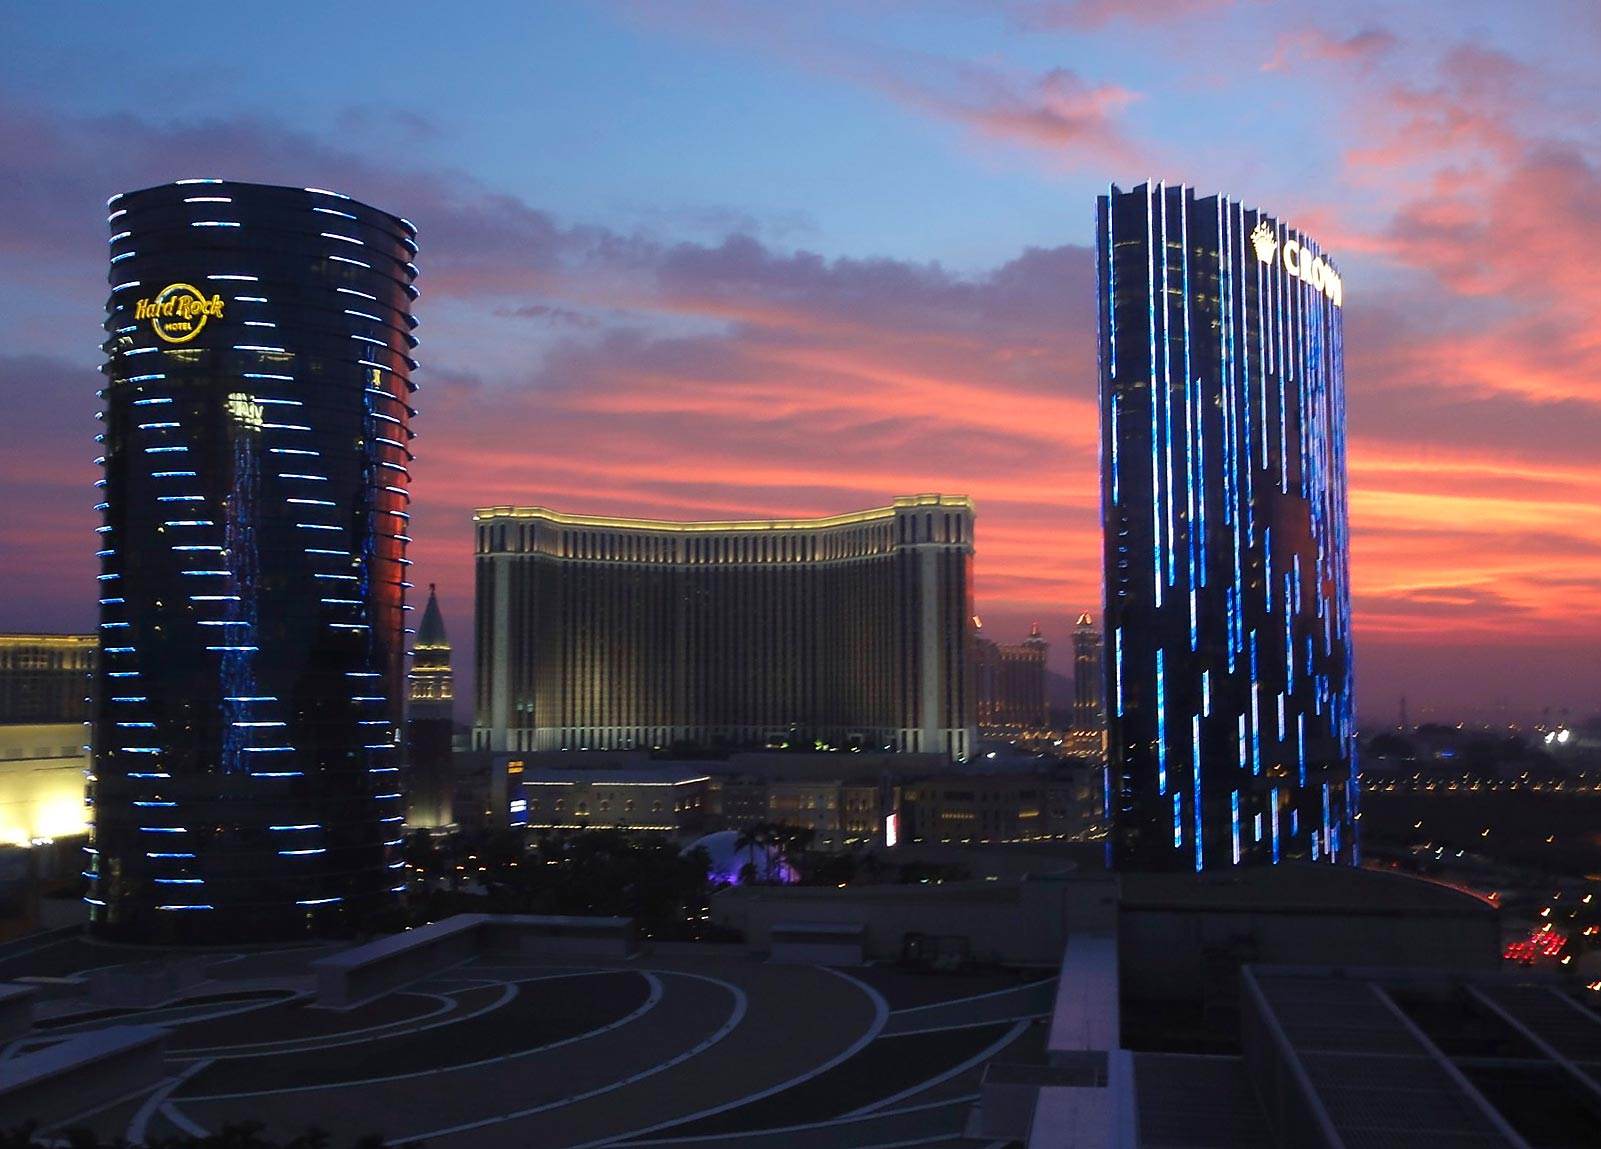 city of dreams casino in macau